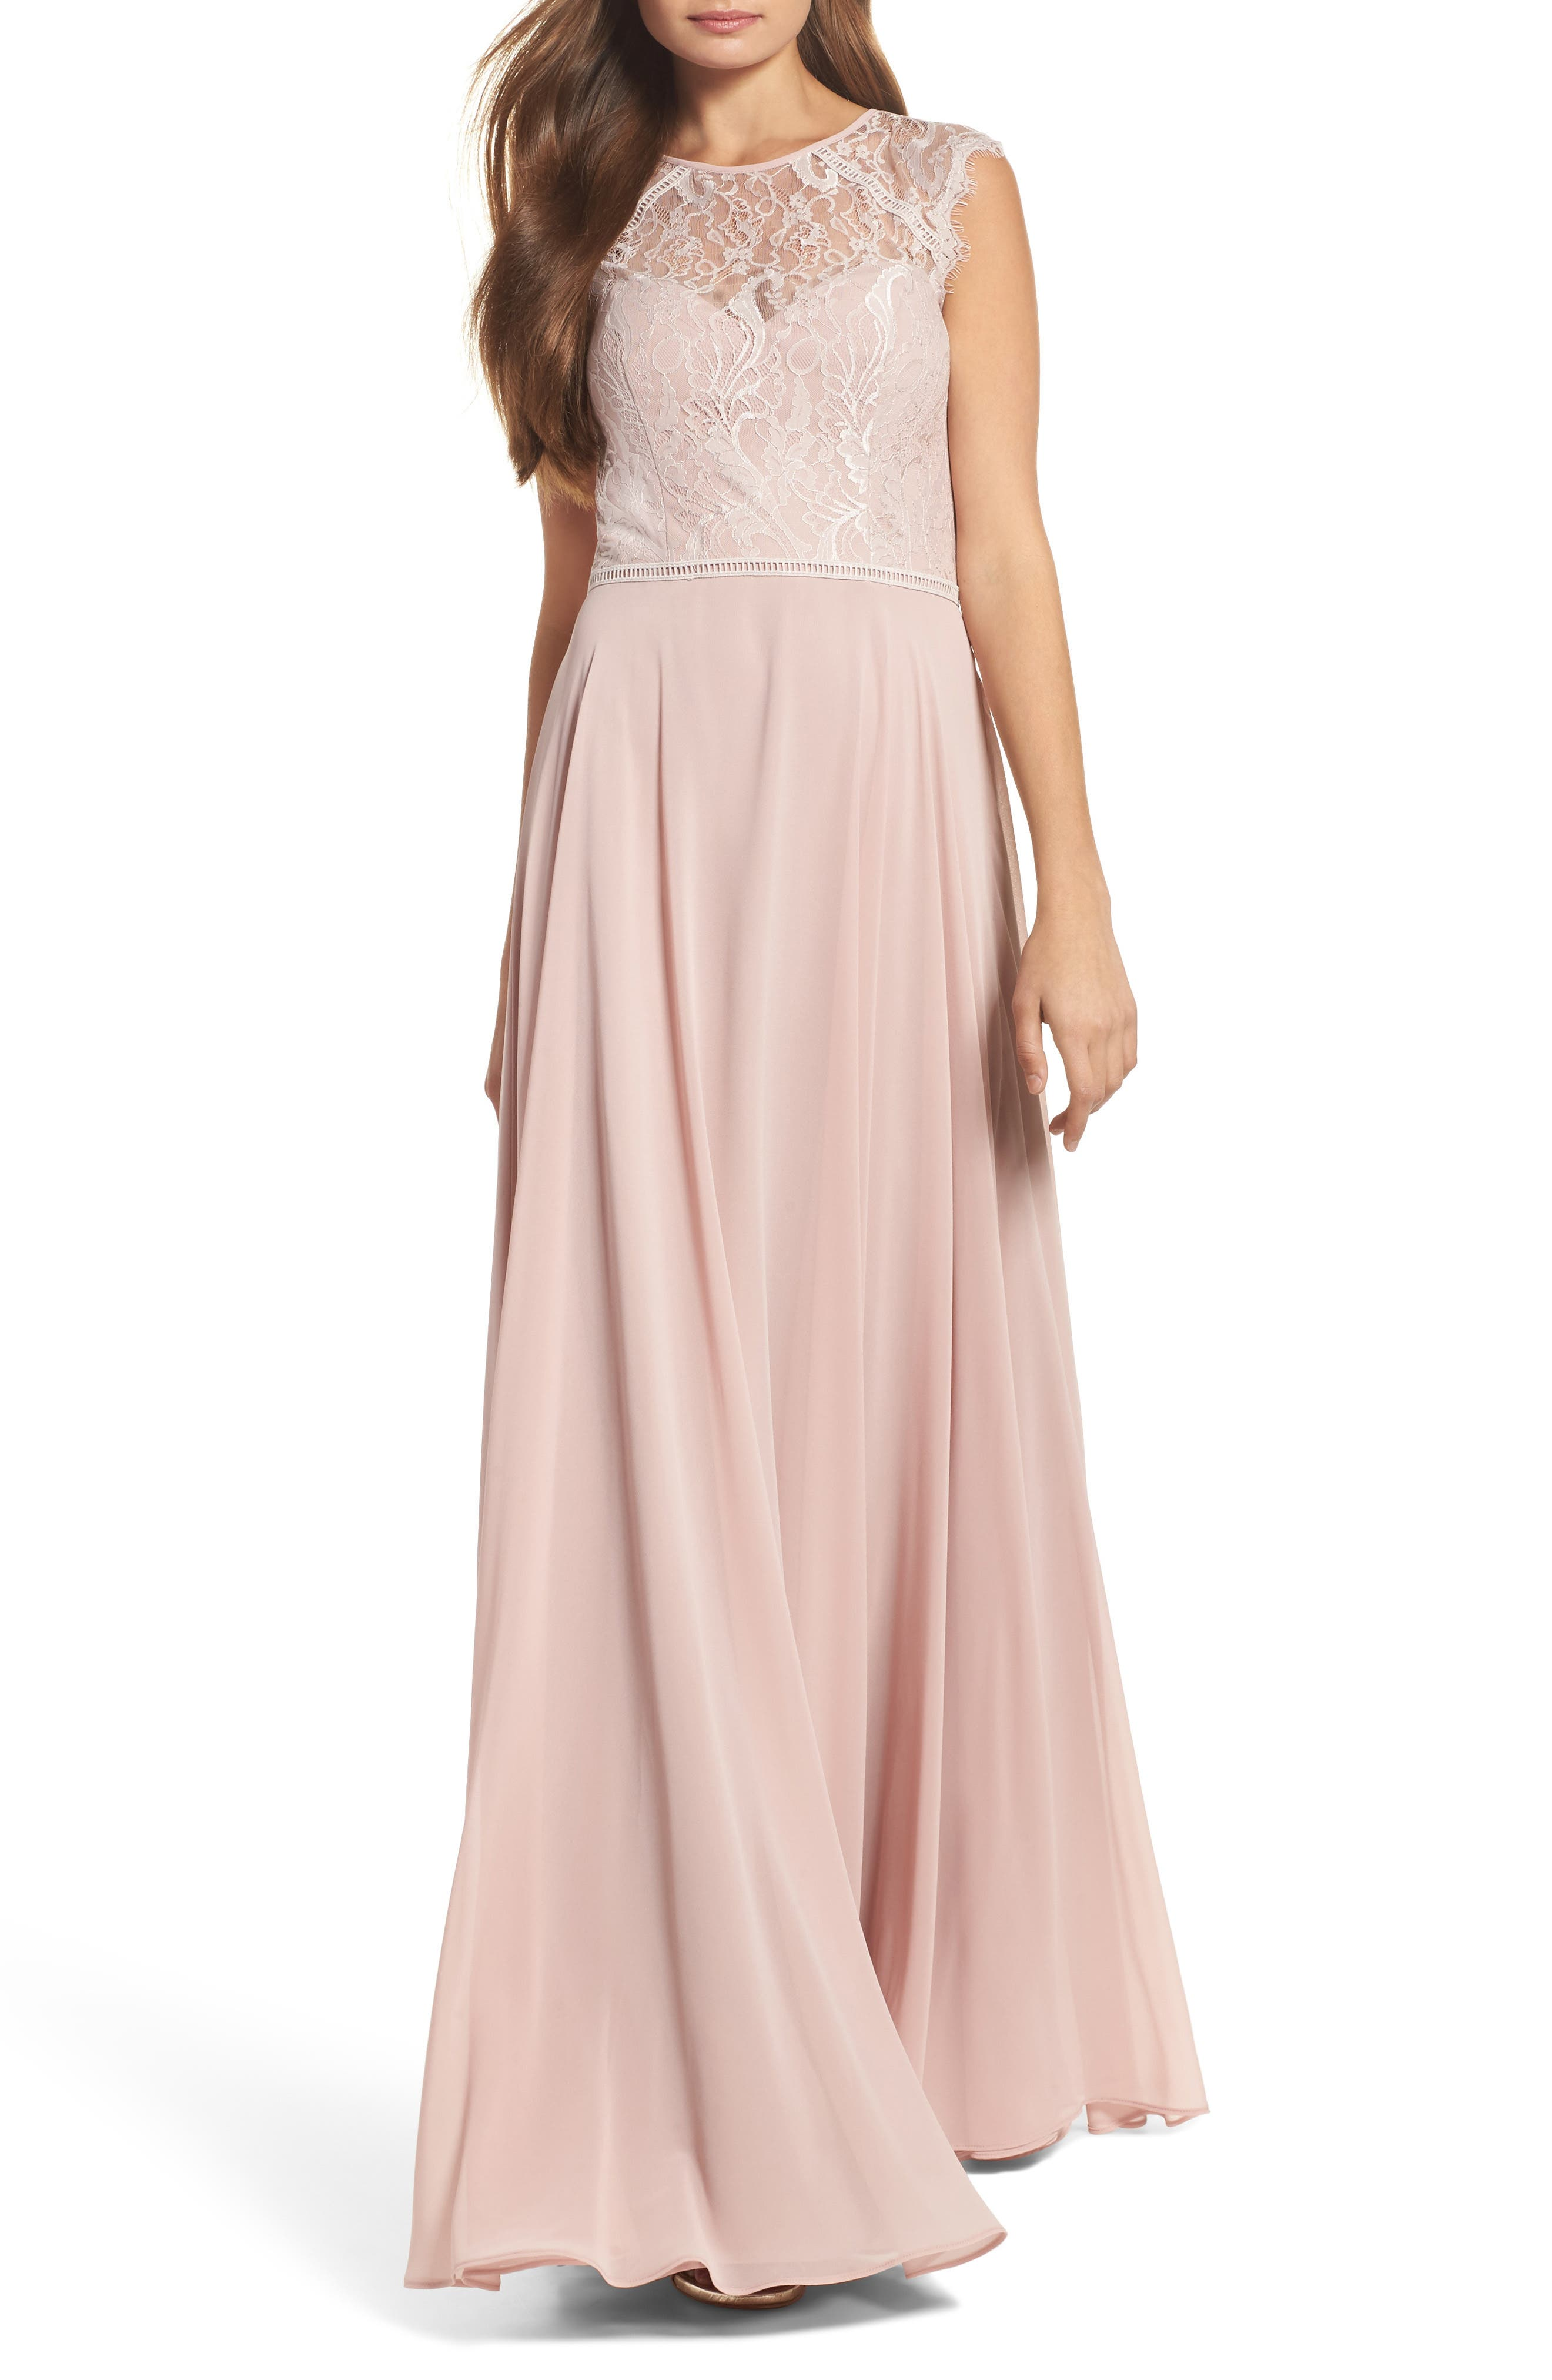 Hayley Paige Occasions Lace & Chiffon Gown, Pink